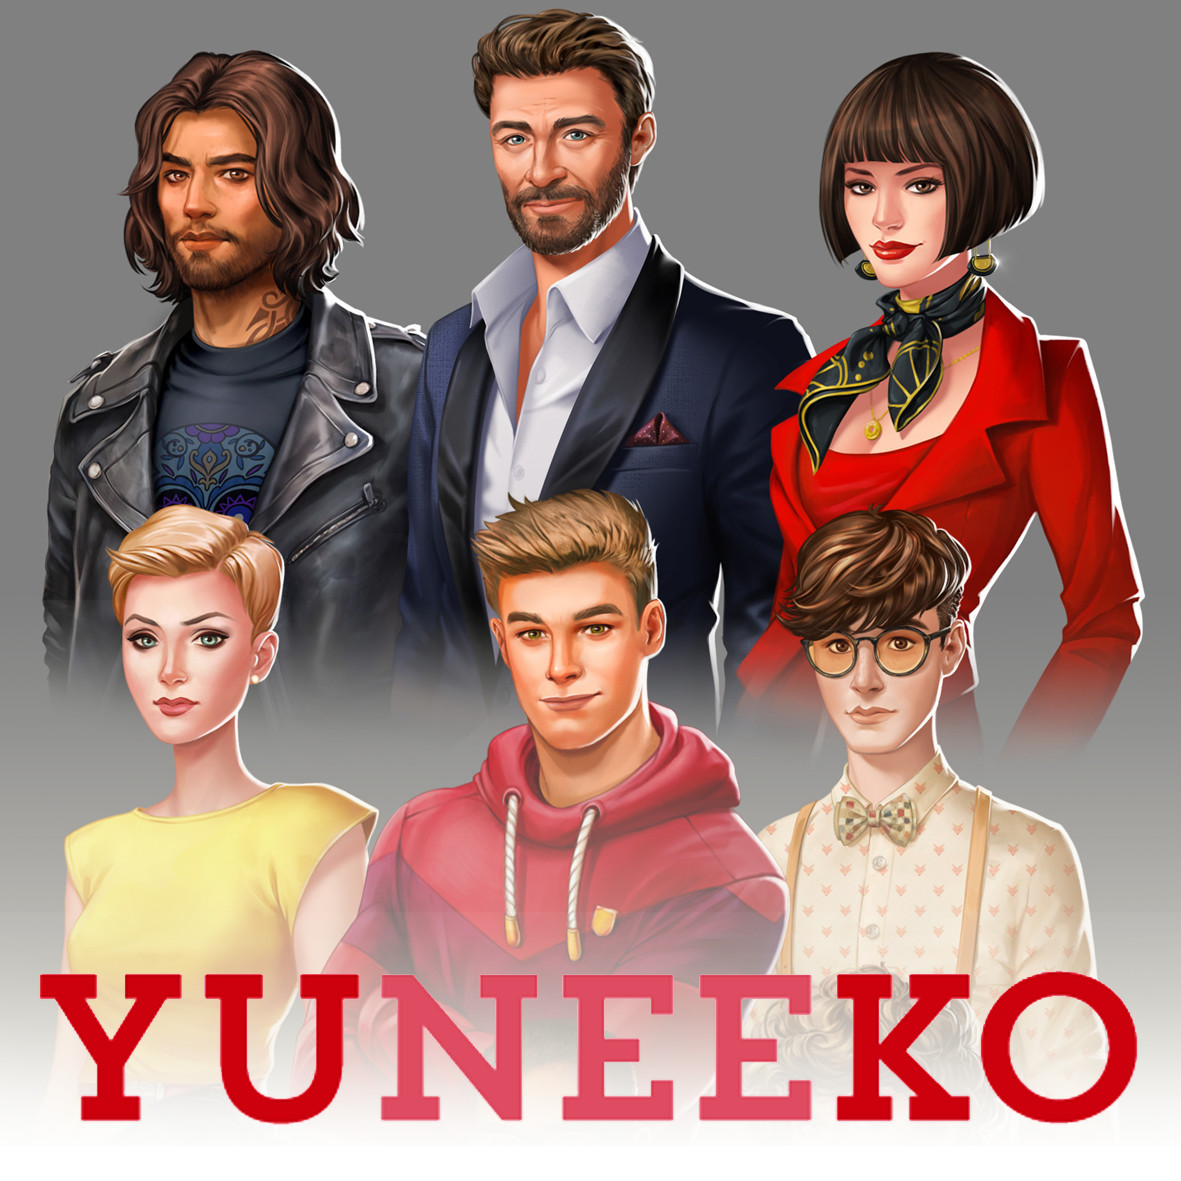 Character art for Smilegate Europe / Yuneeko.